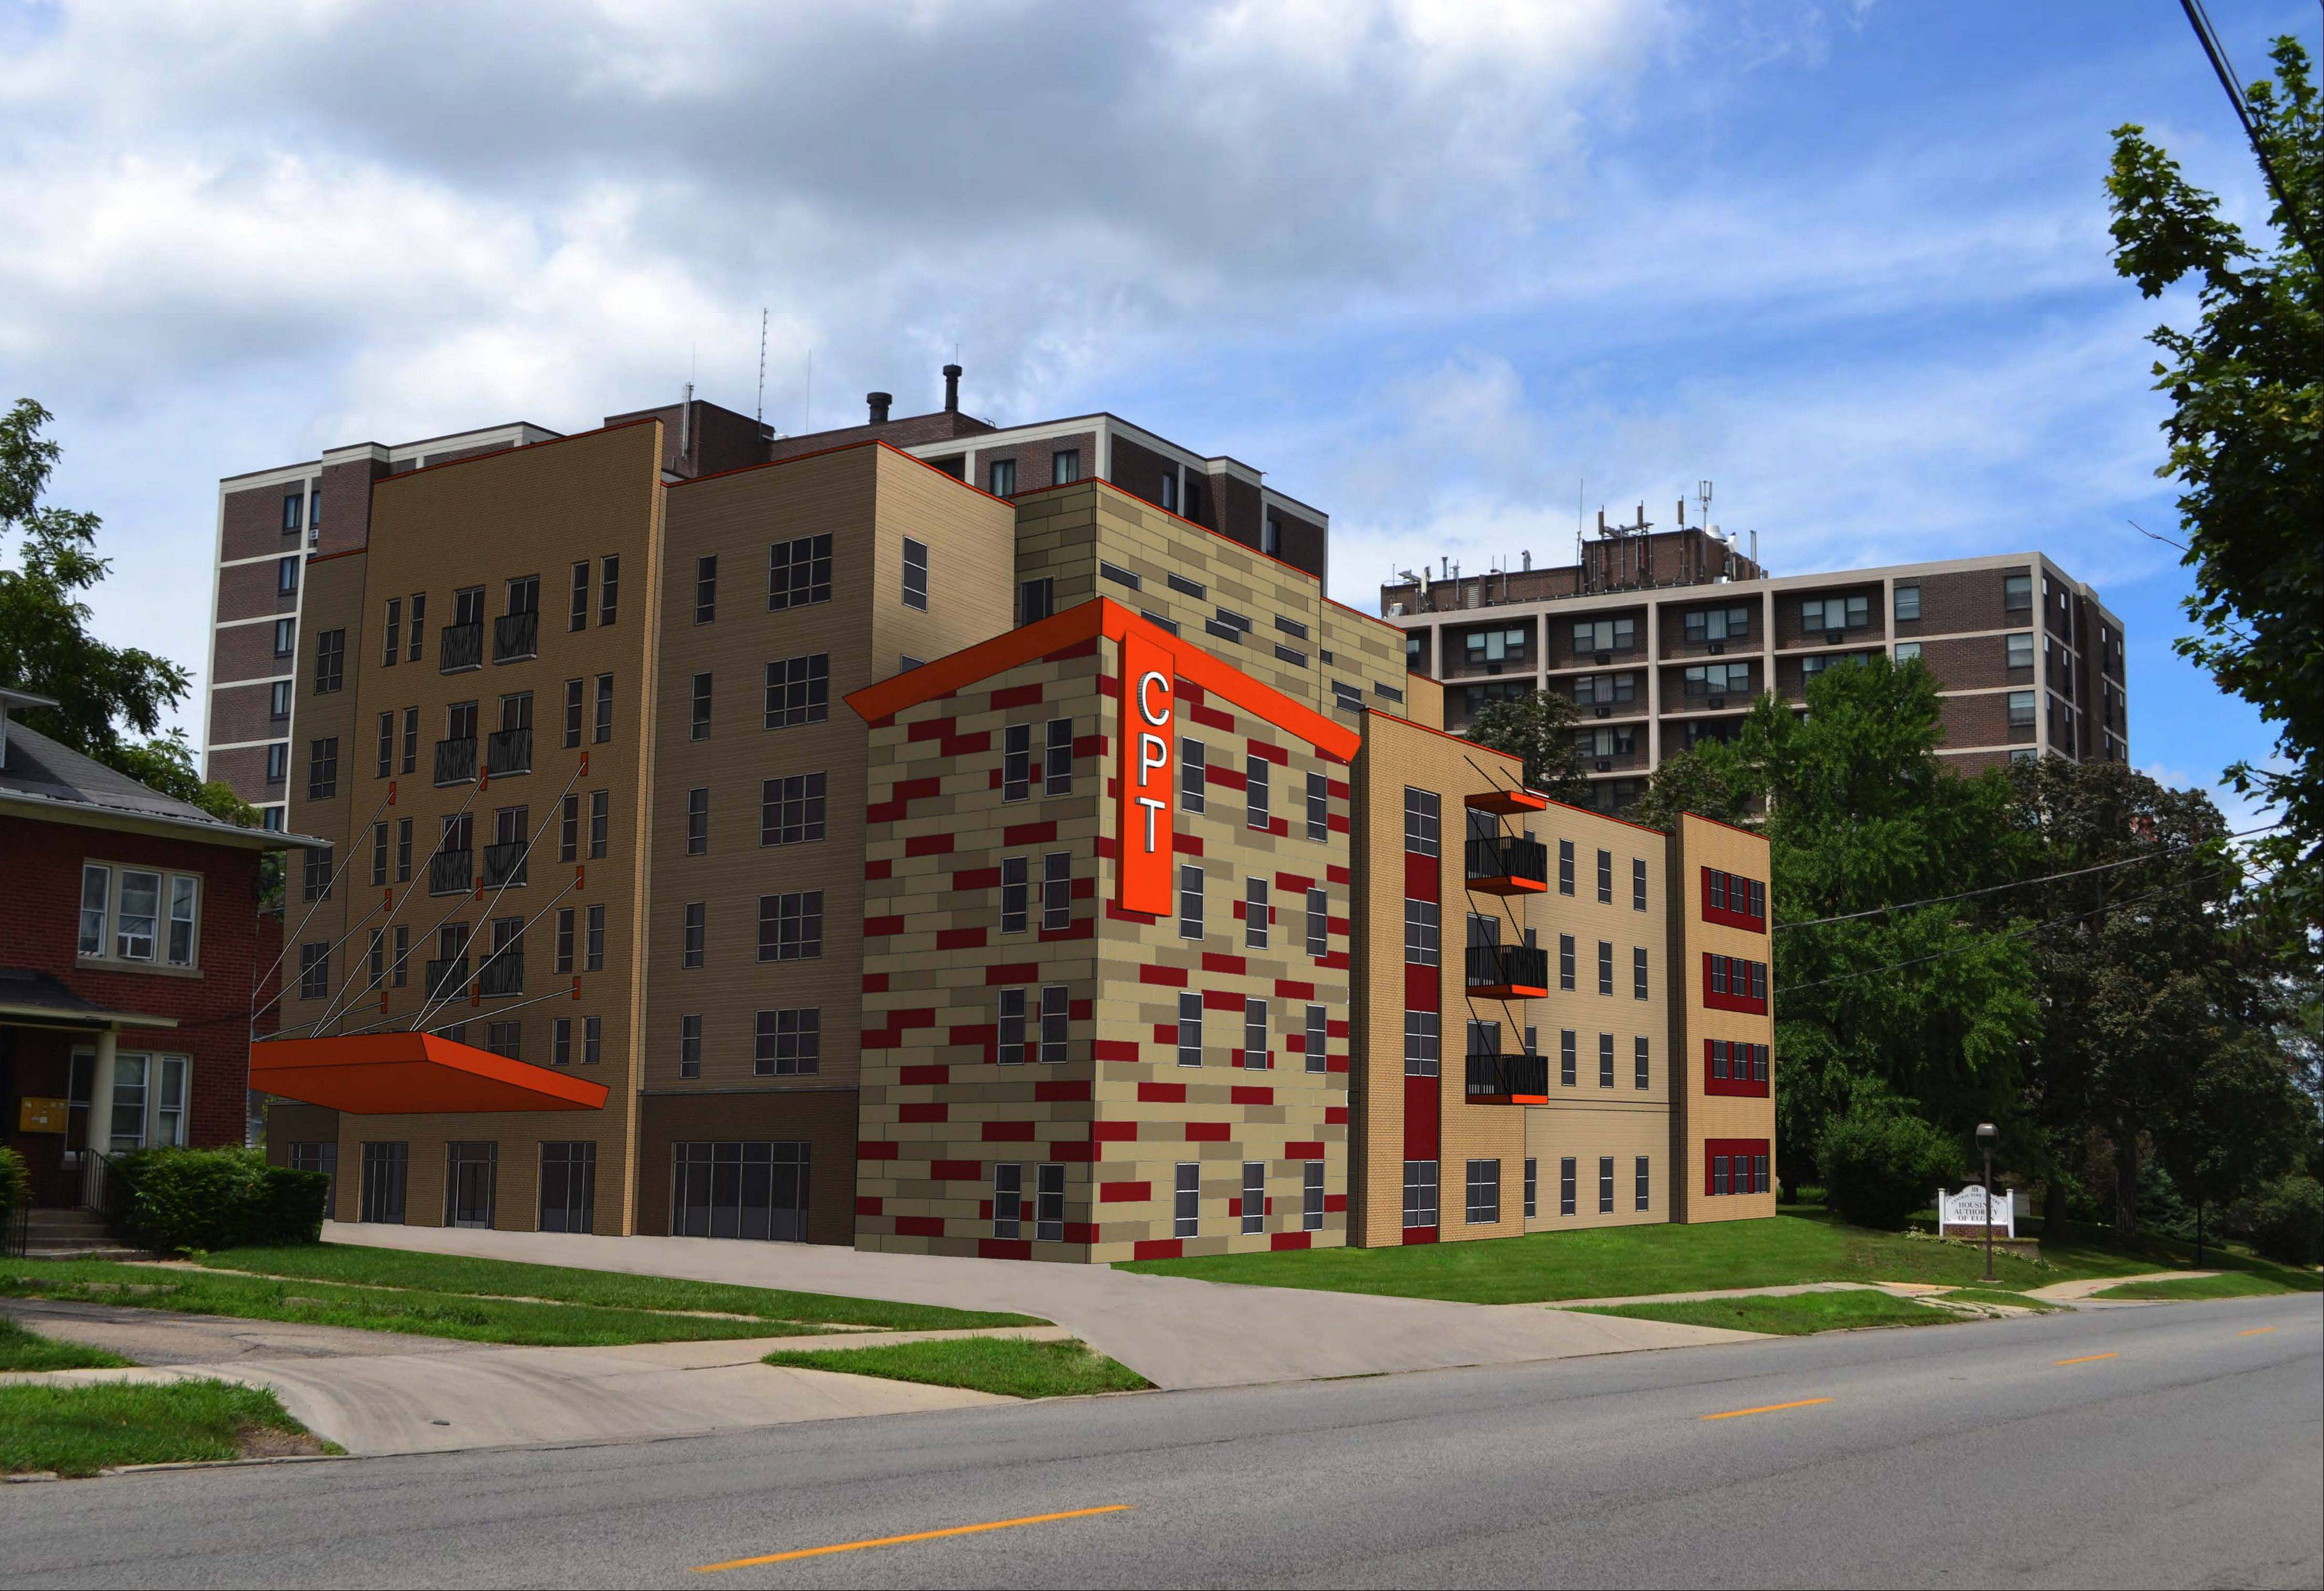 Initially, the new L-shaped building was designed with a bolder, reddish color scheme, but it was toned down with earth hues after negative feedback.